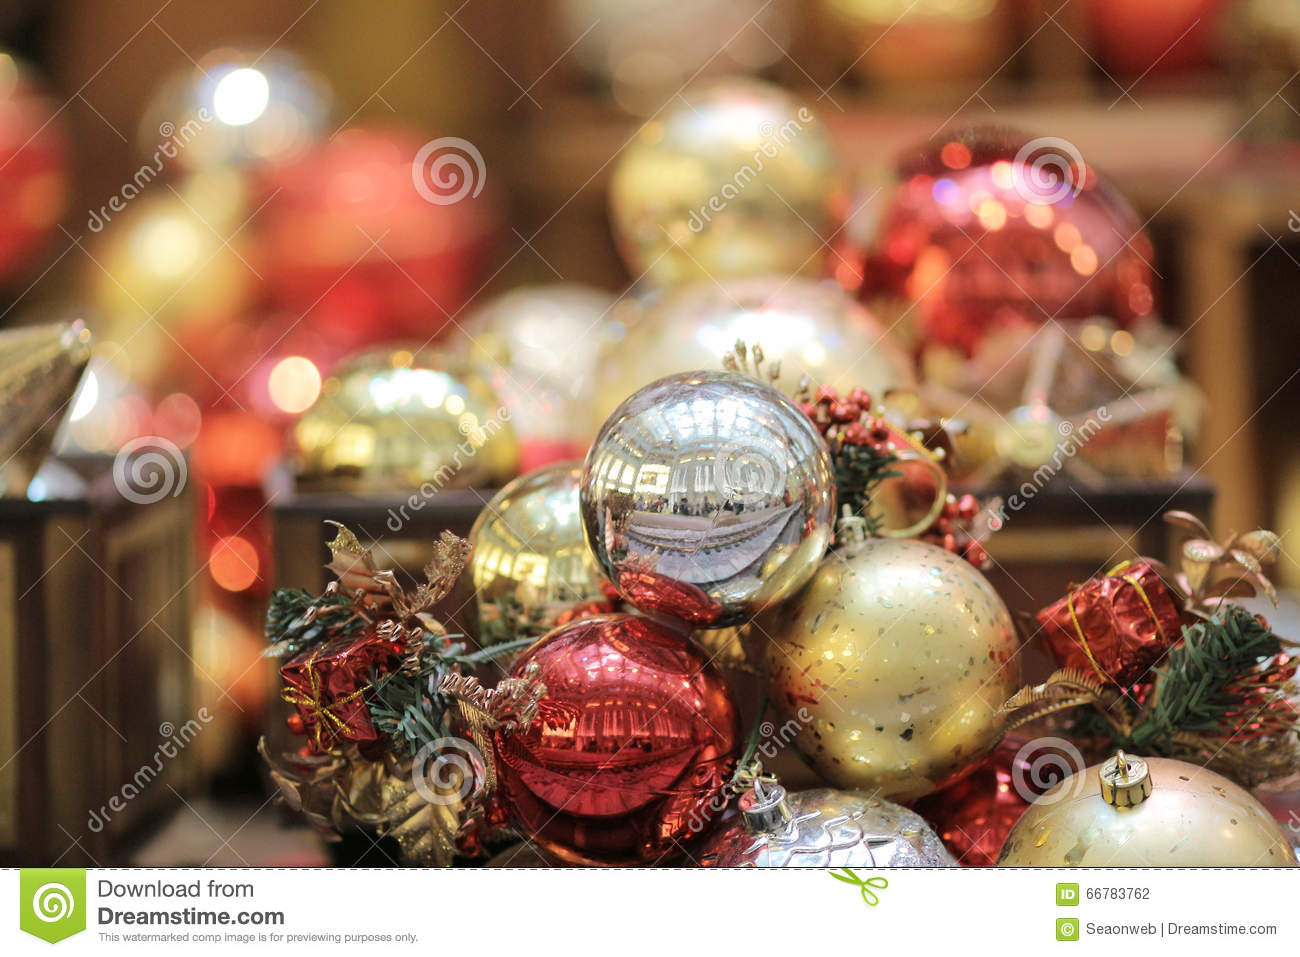 download christmas decorations in hong kong stock photo image of chinese bustle 66783762 - Chinese Christmas Decorations